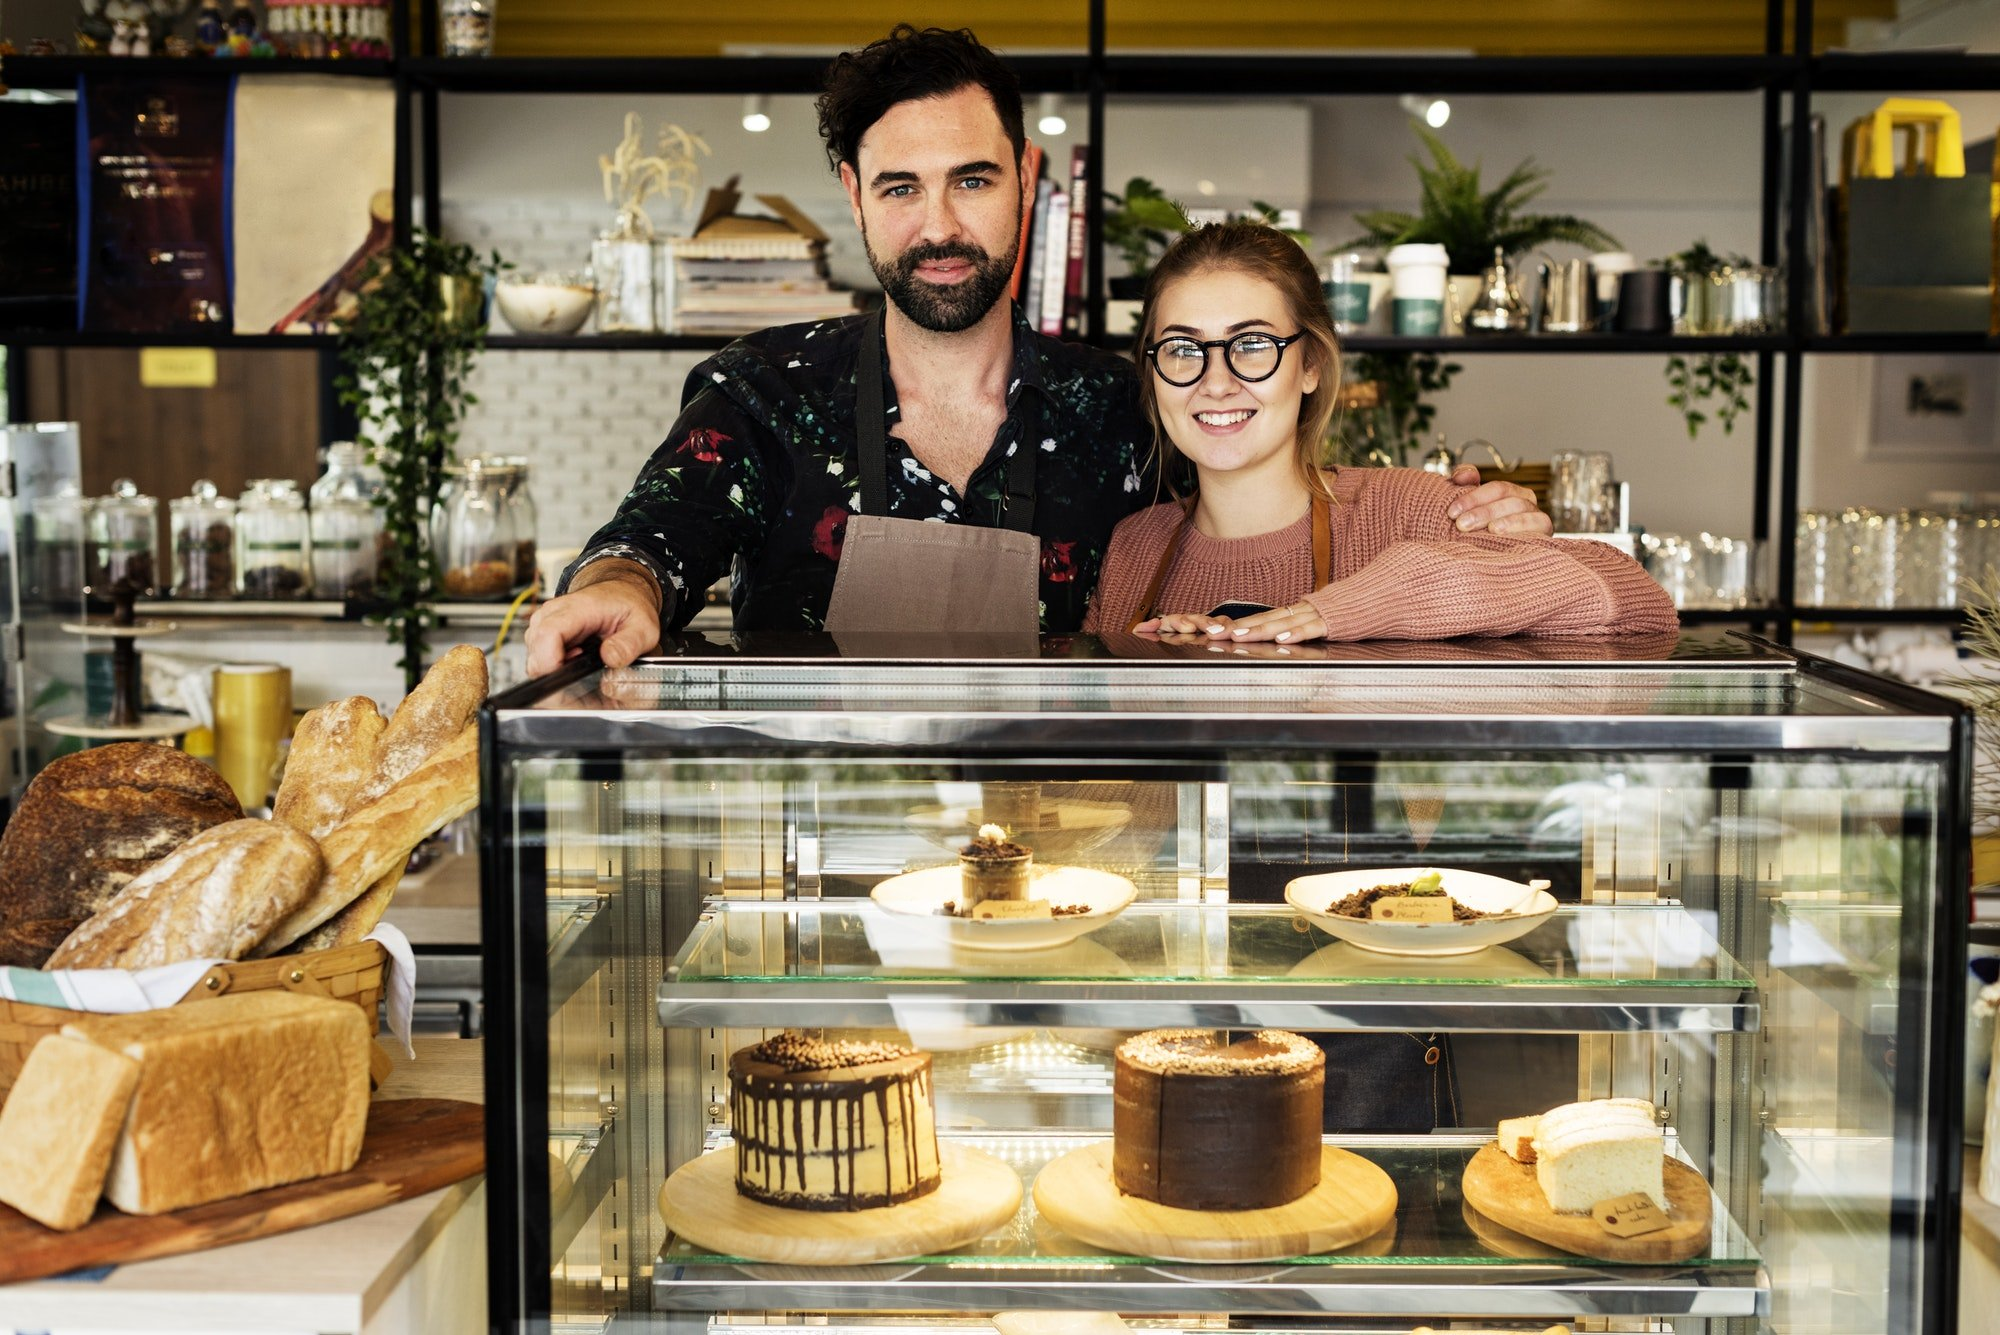 Cake cafe small business owners